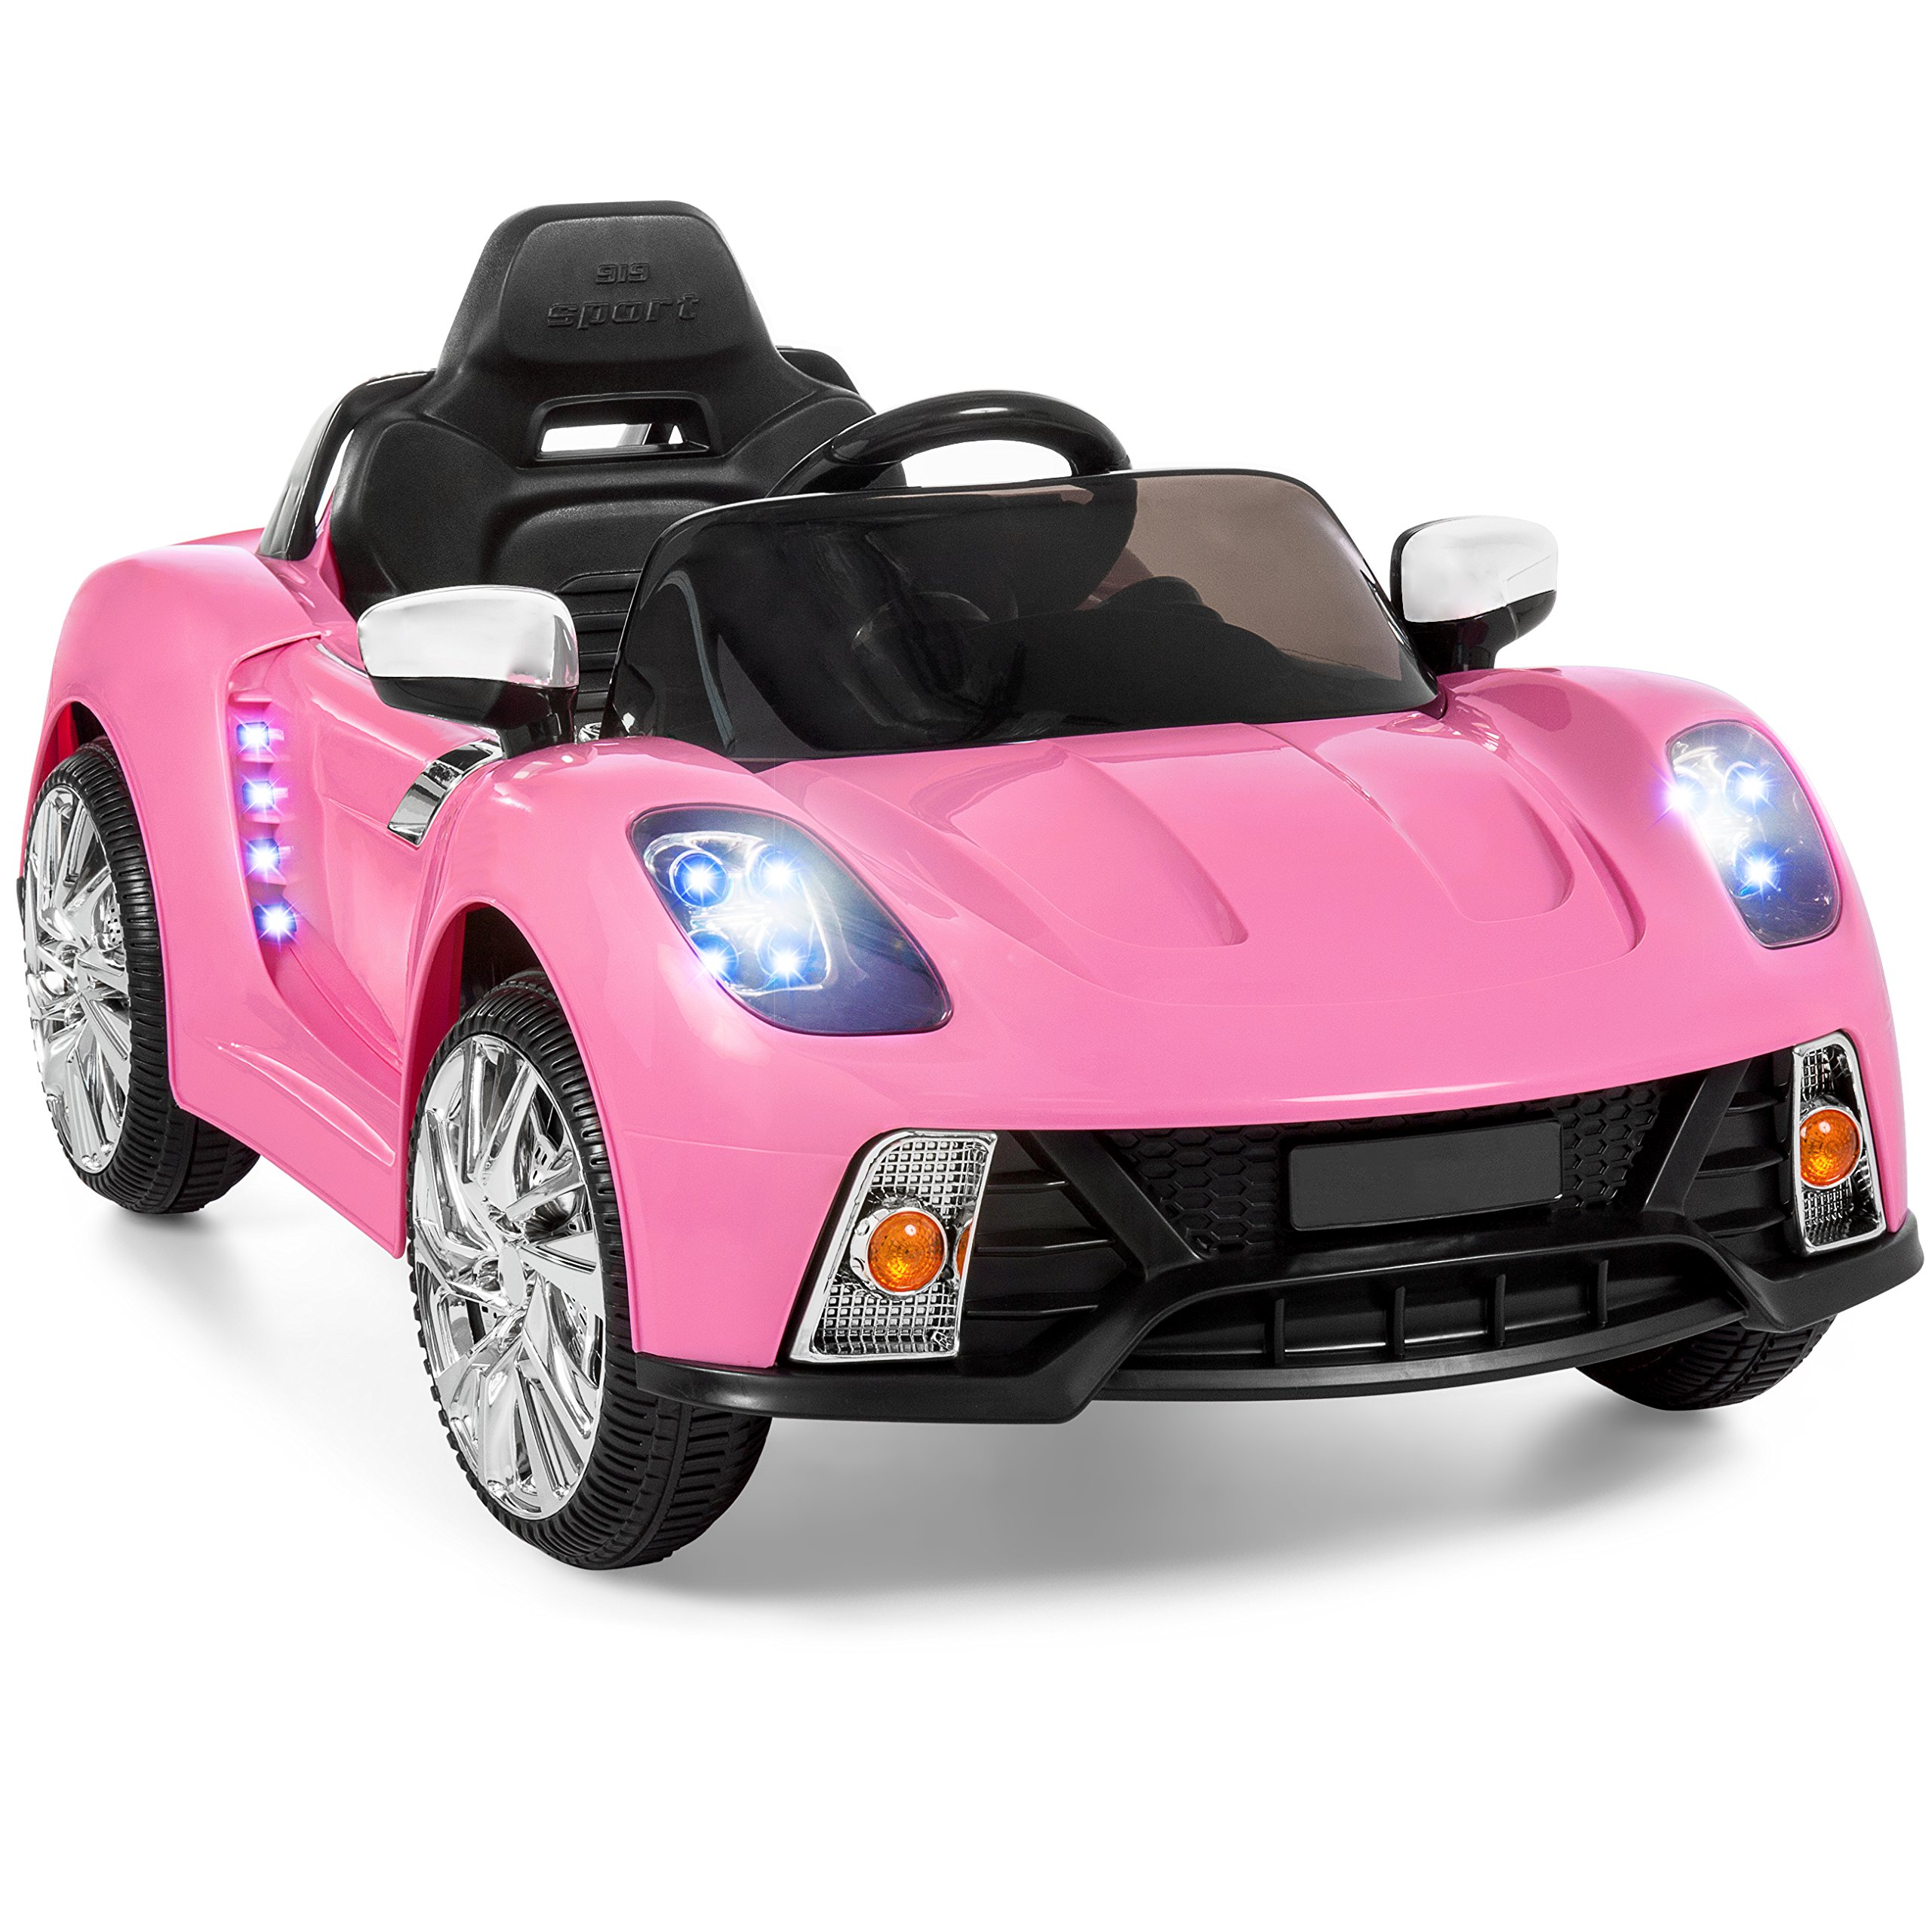 Best Choice Products Kids 12V Ride On Car with MP3 Electric Battery Power, Pink by Best Choice Products